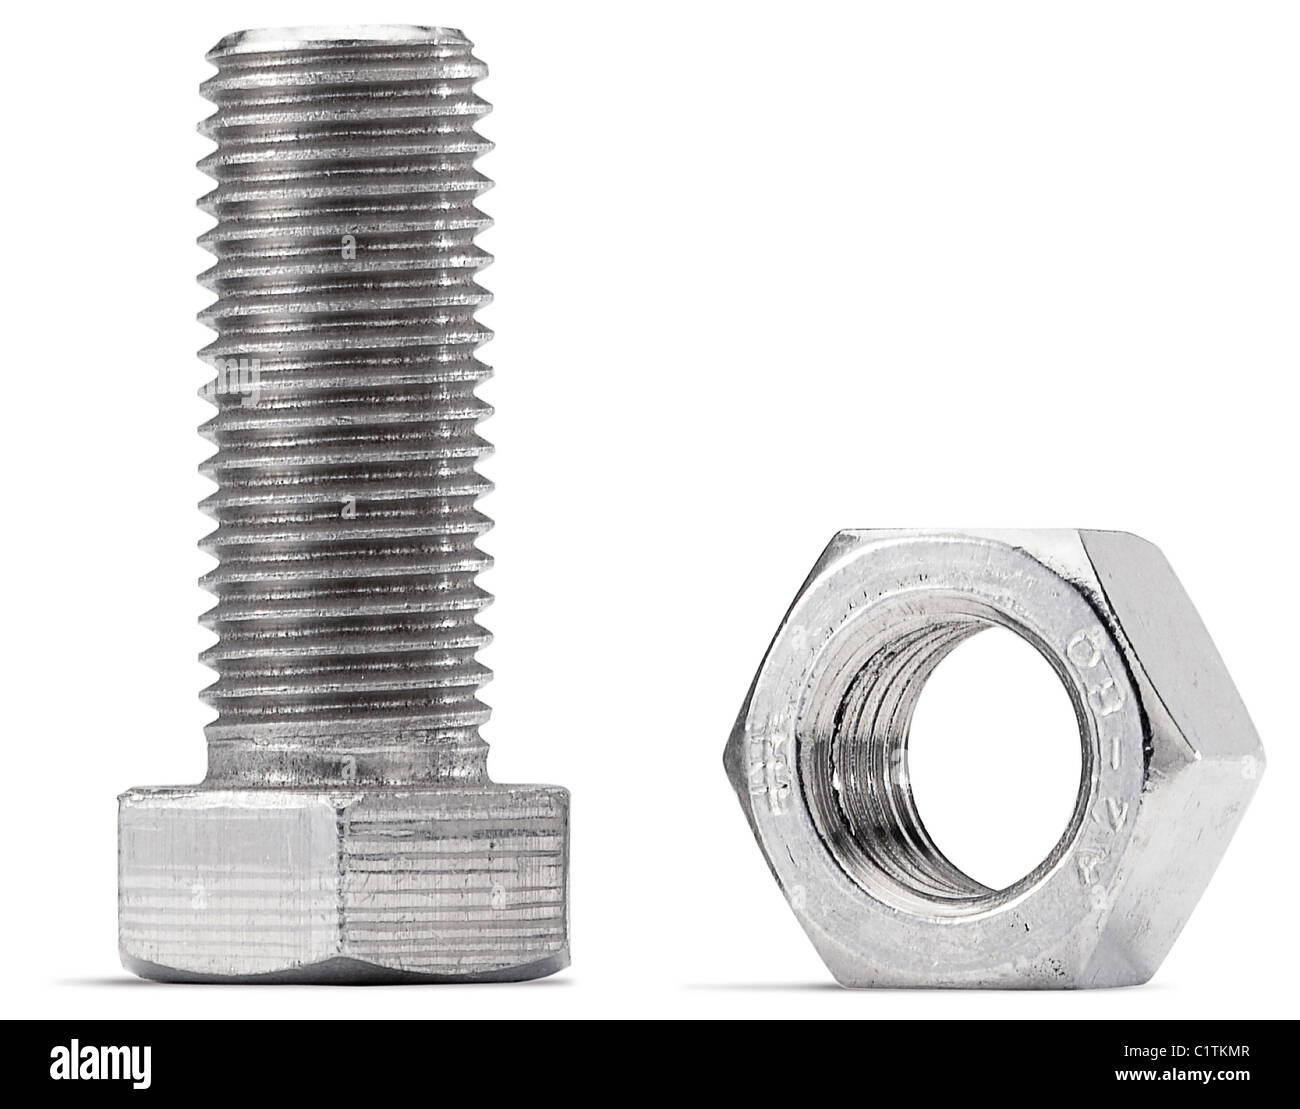 nuts and bolts on a white background with clipping path Stock Photo